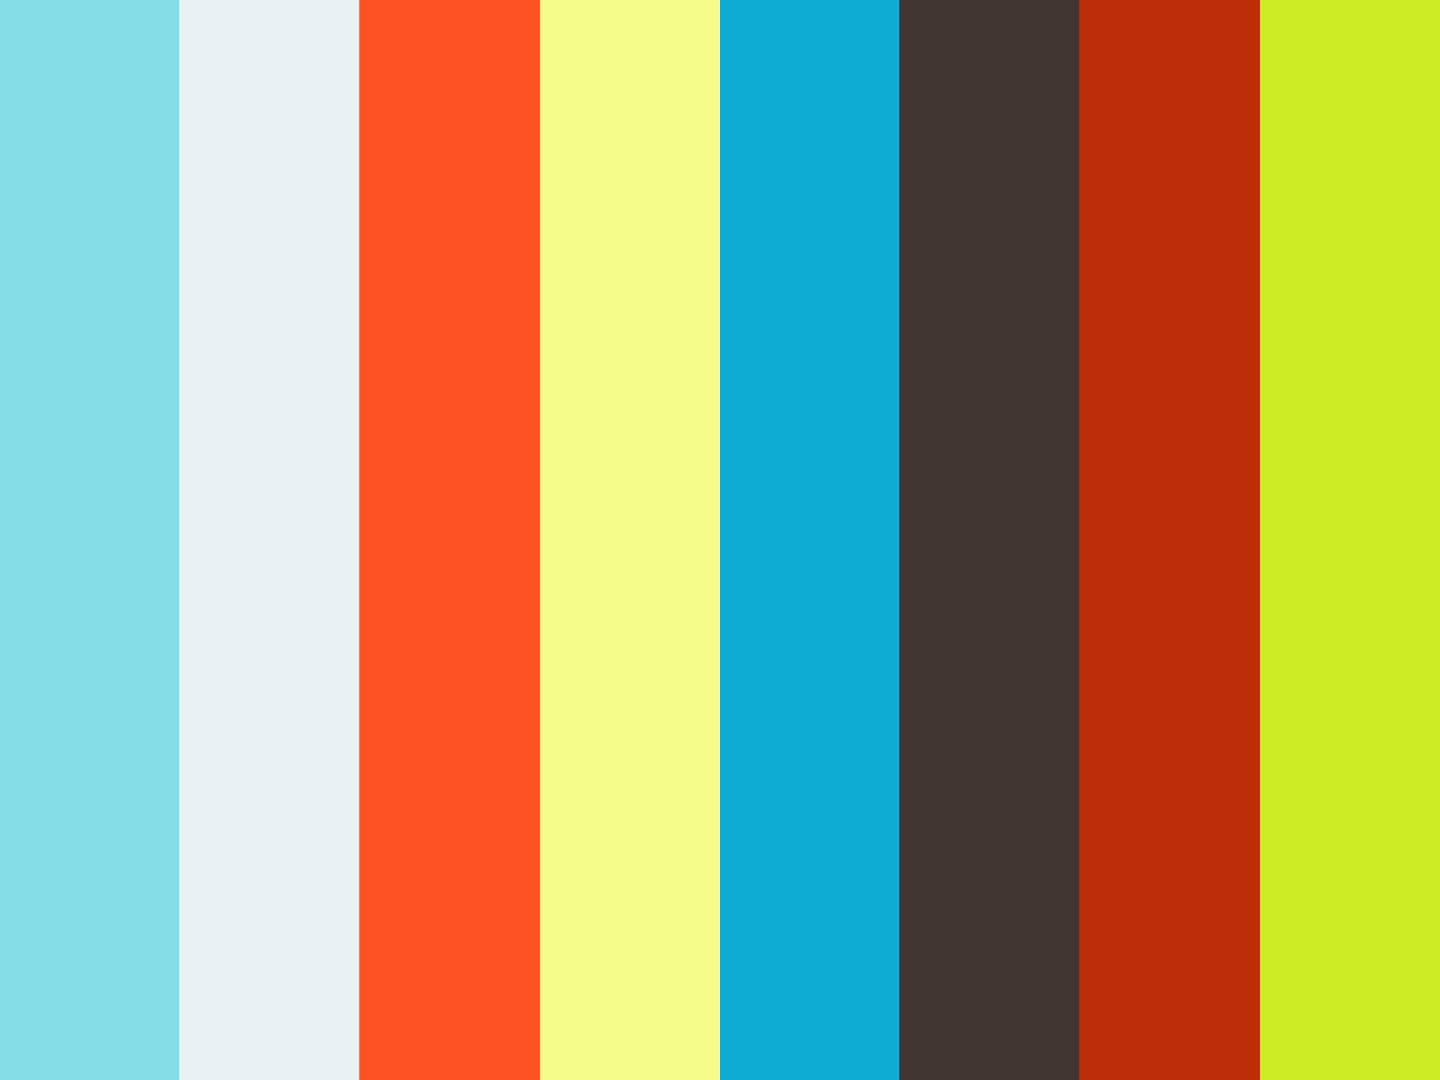 Nude Beach News 11 On Vimeo-2525